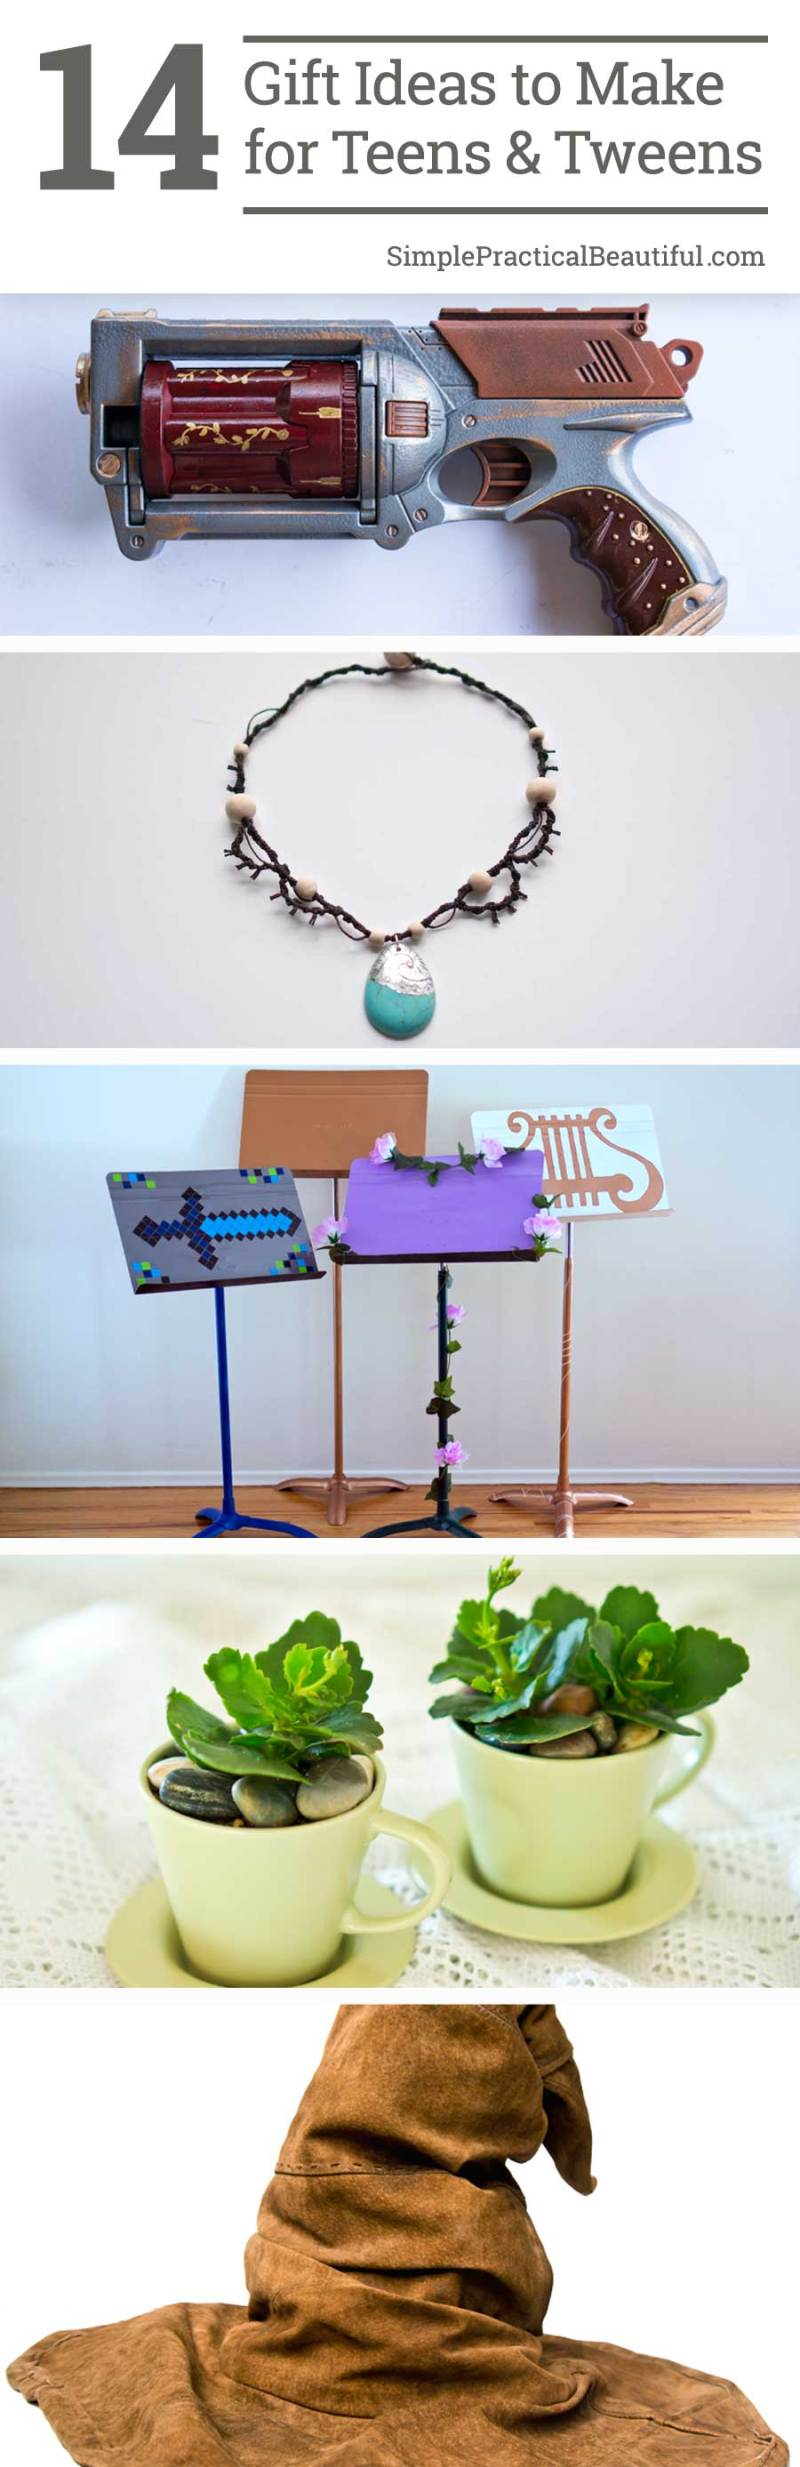 14 Gift Ideas to Make for Teens and Tweens Simple Practical